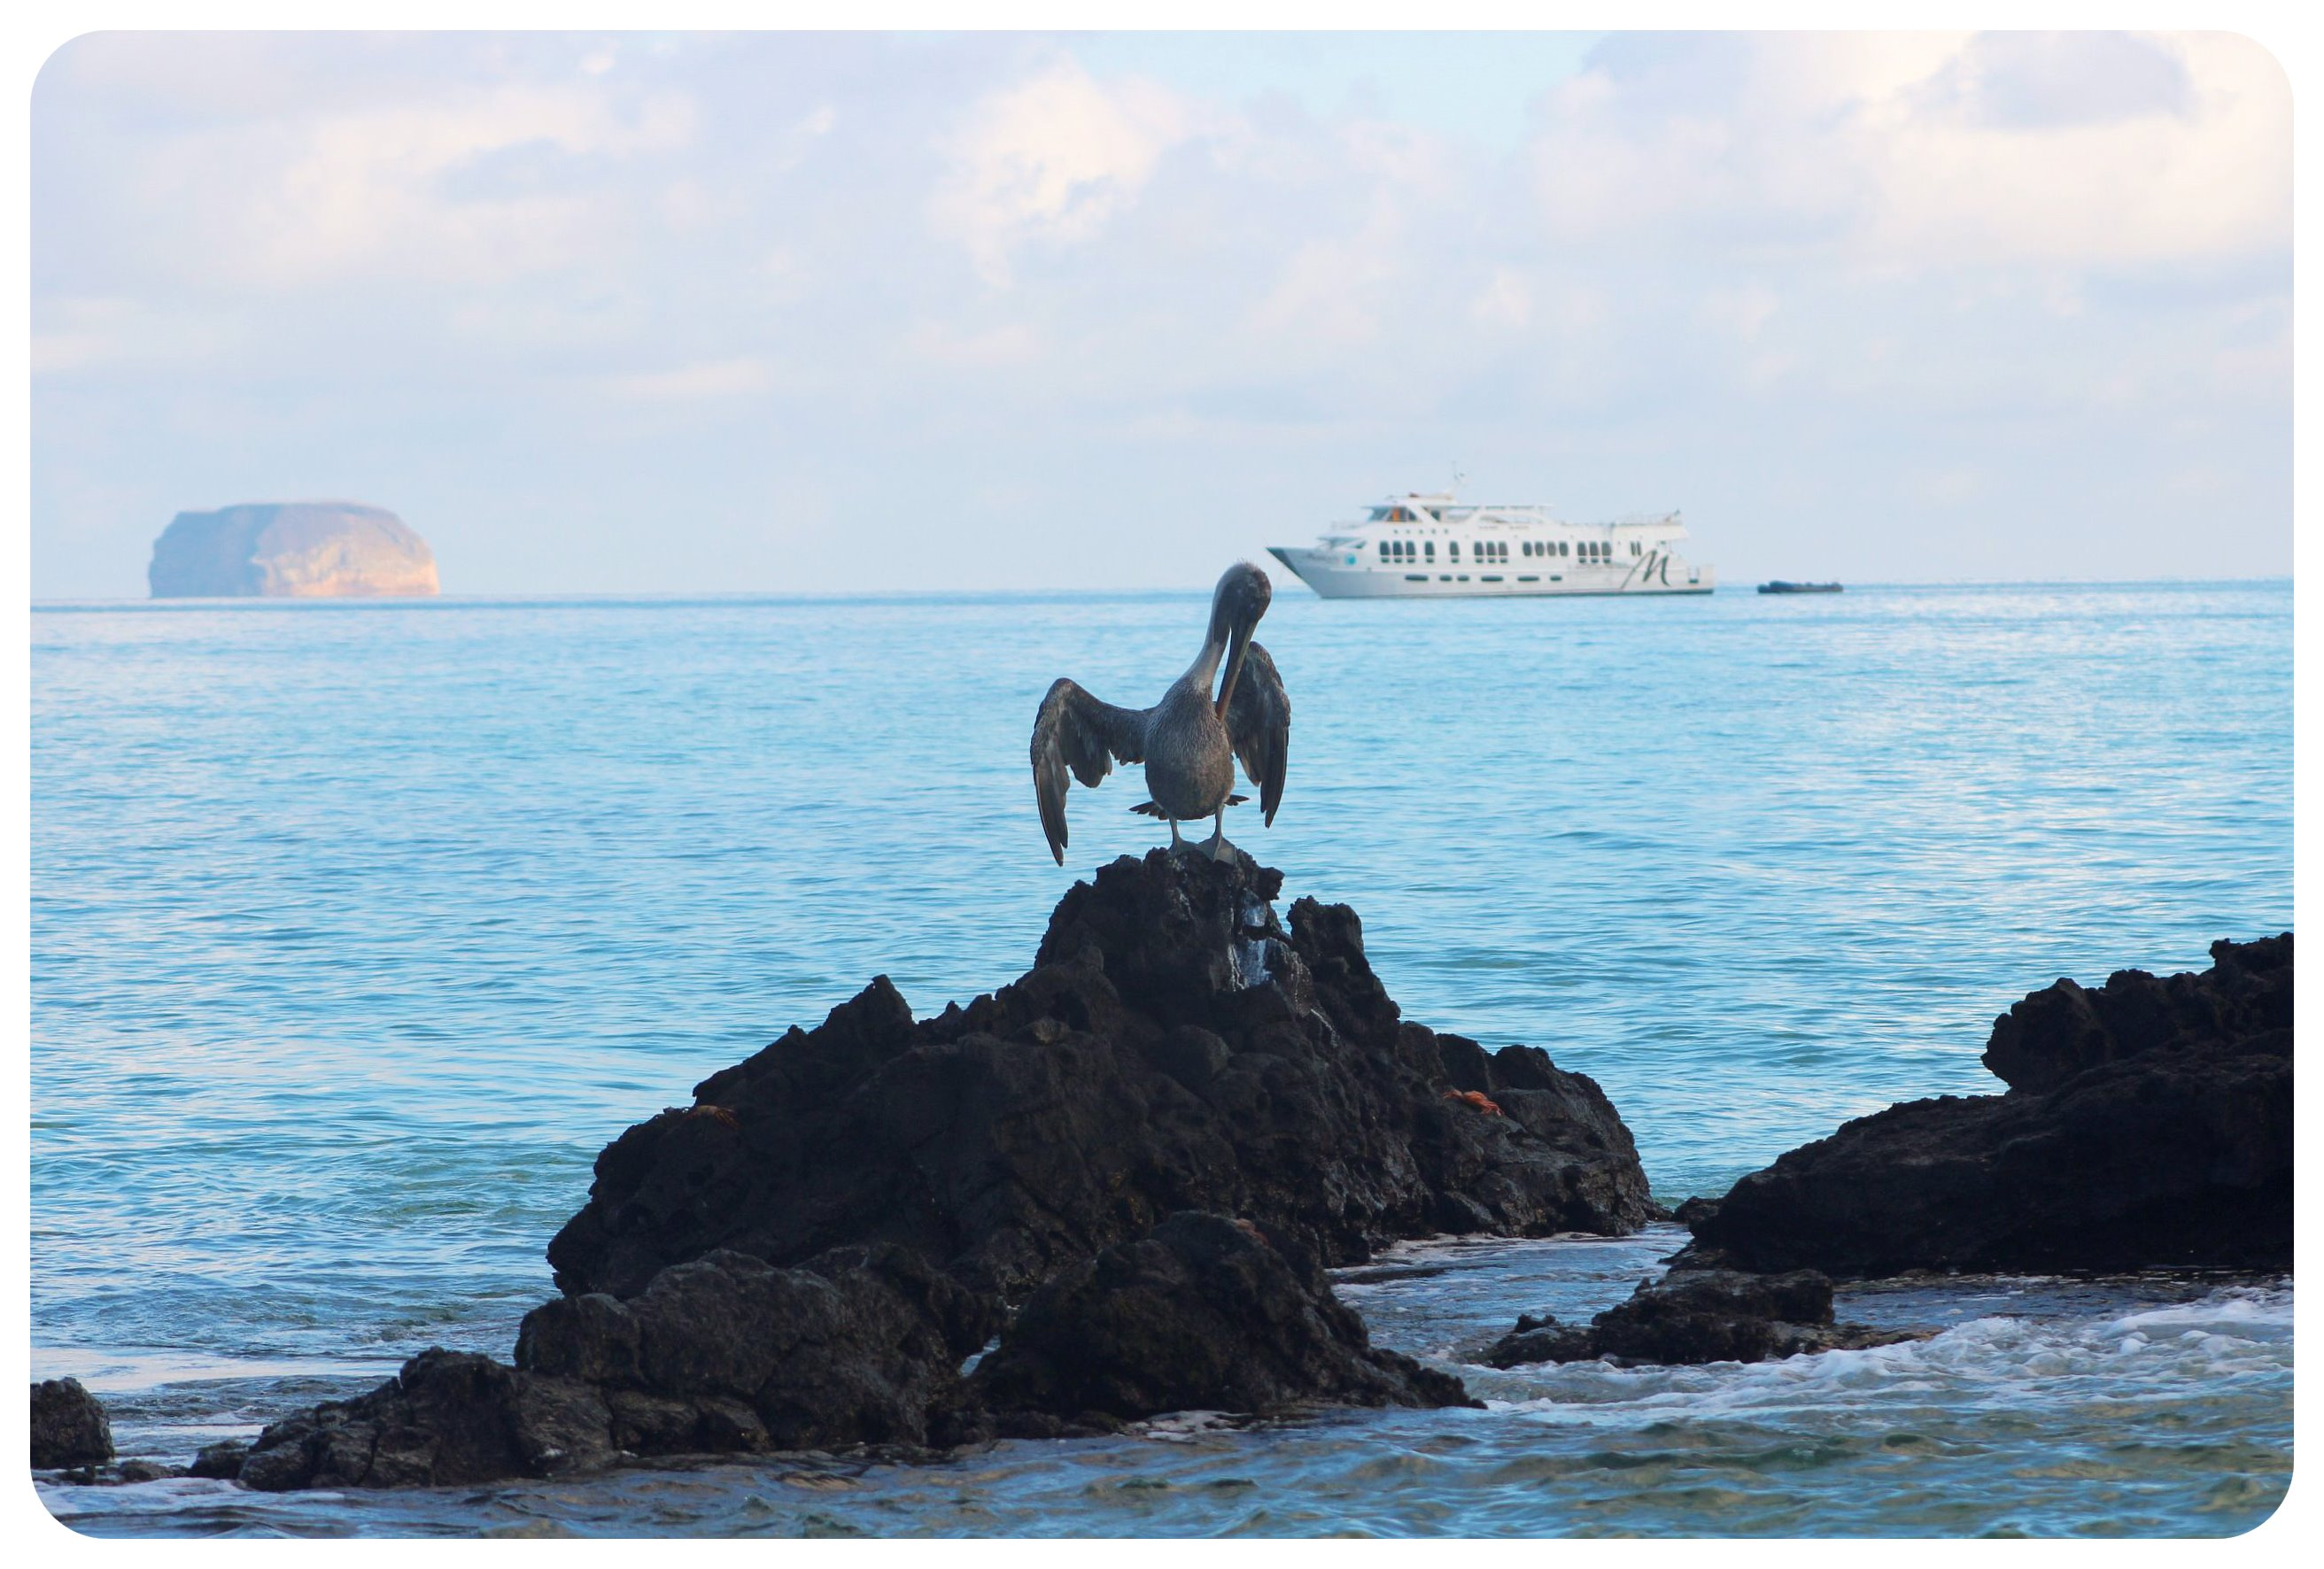 galapagos islands pelican and majestic yacht